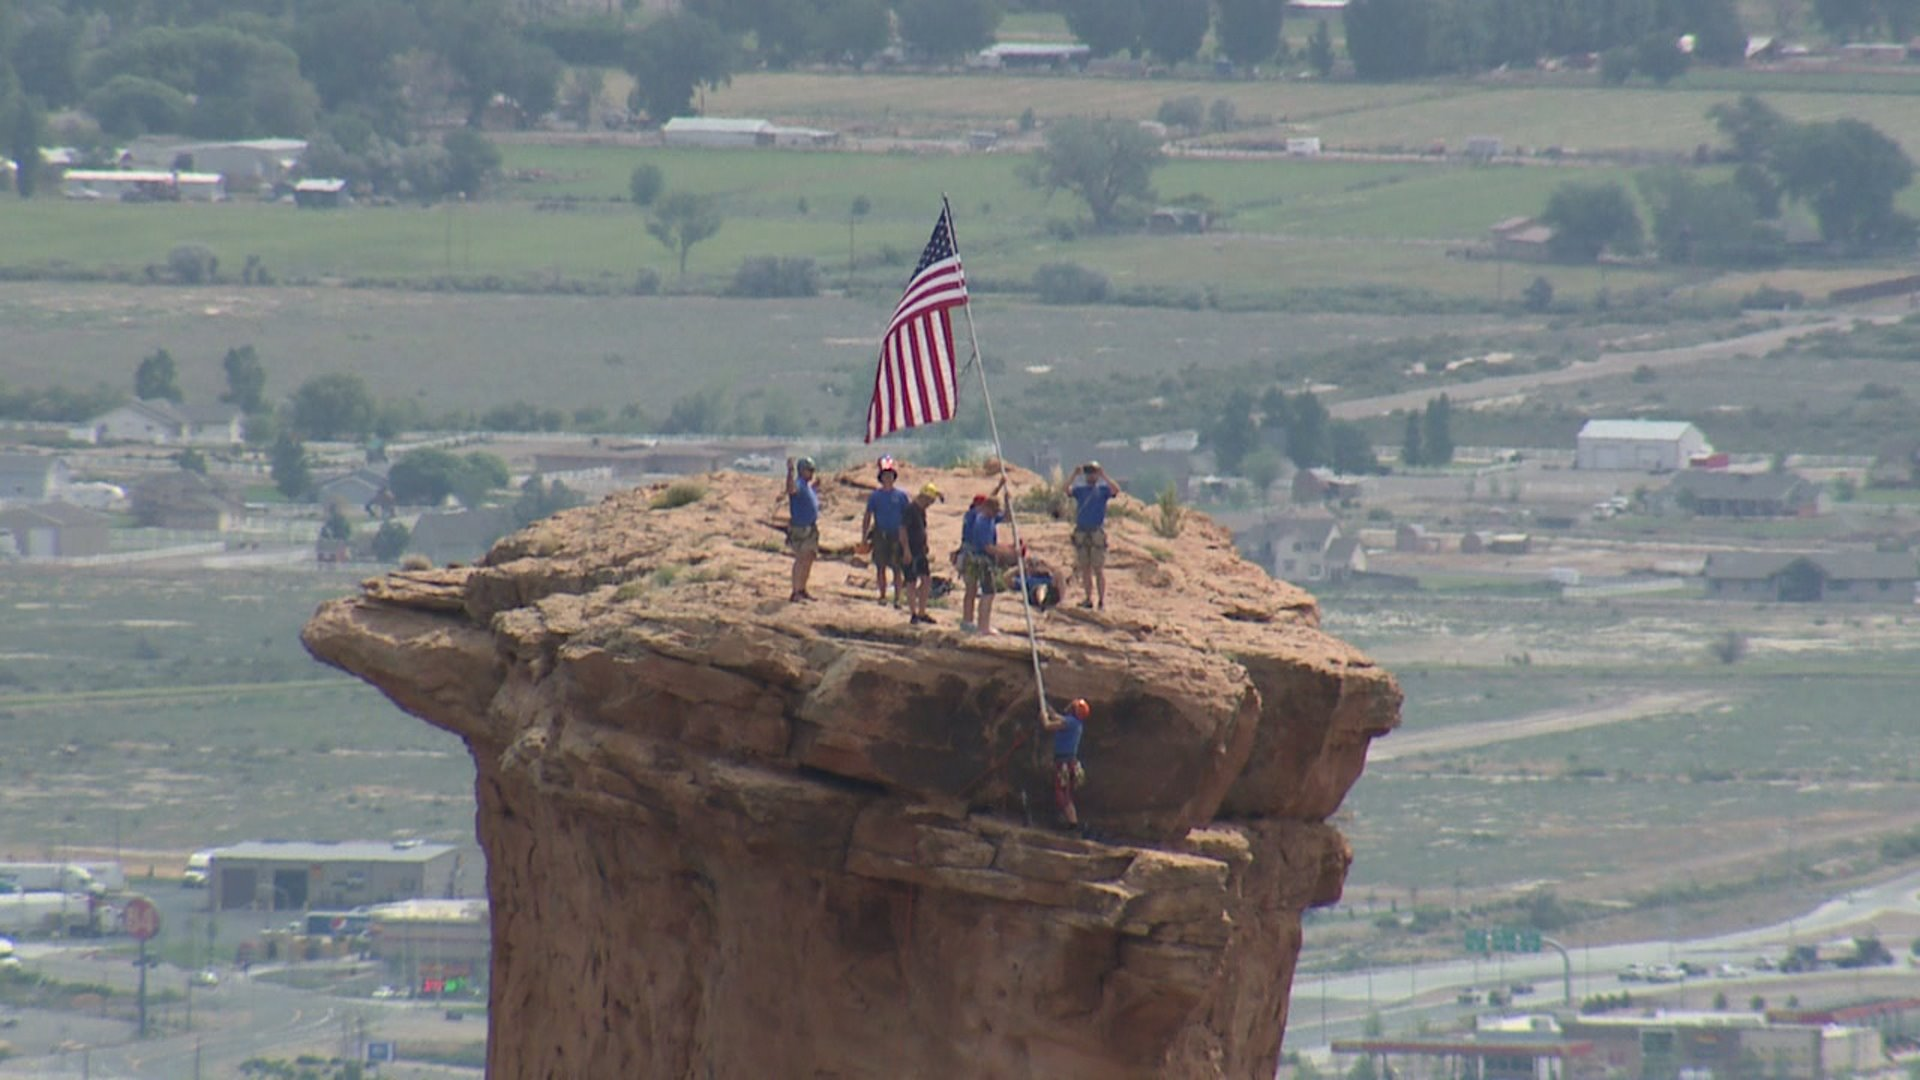 Raising Old Glory on Independence Monument